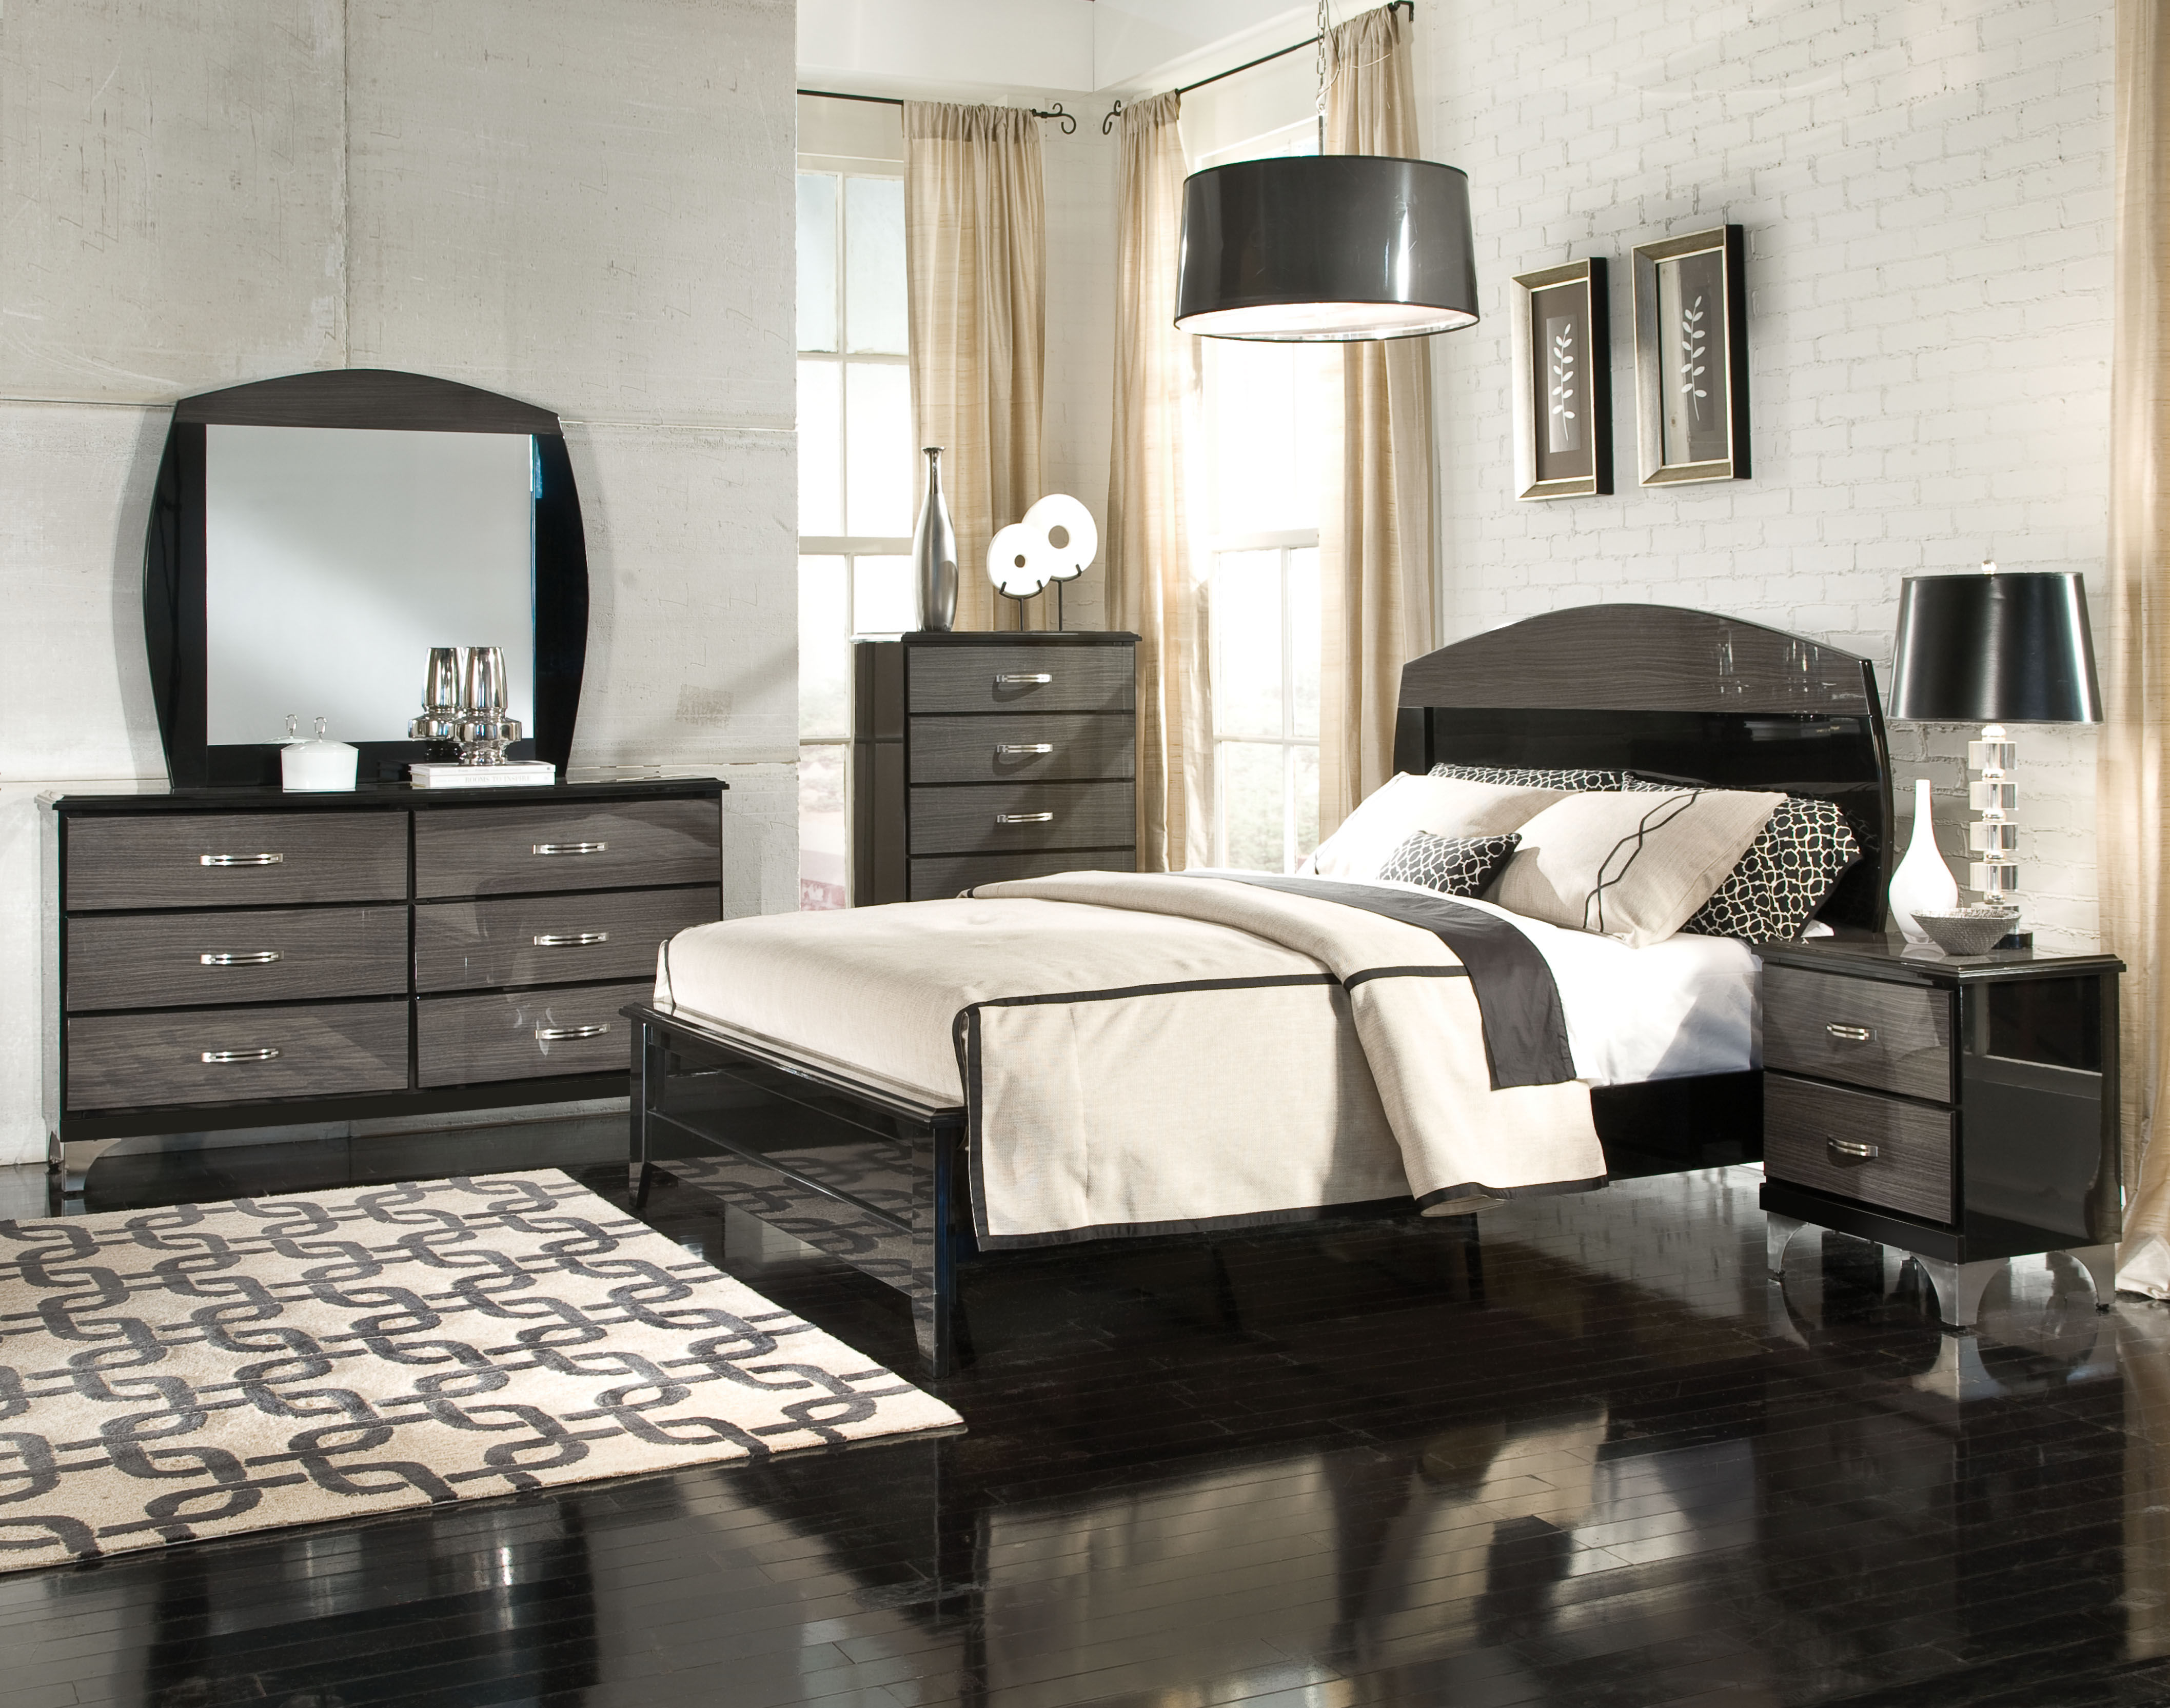 Decker black grey master bedroom set the classy home - Black and grey bedroom furniture ...